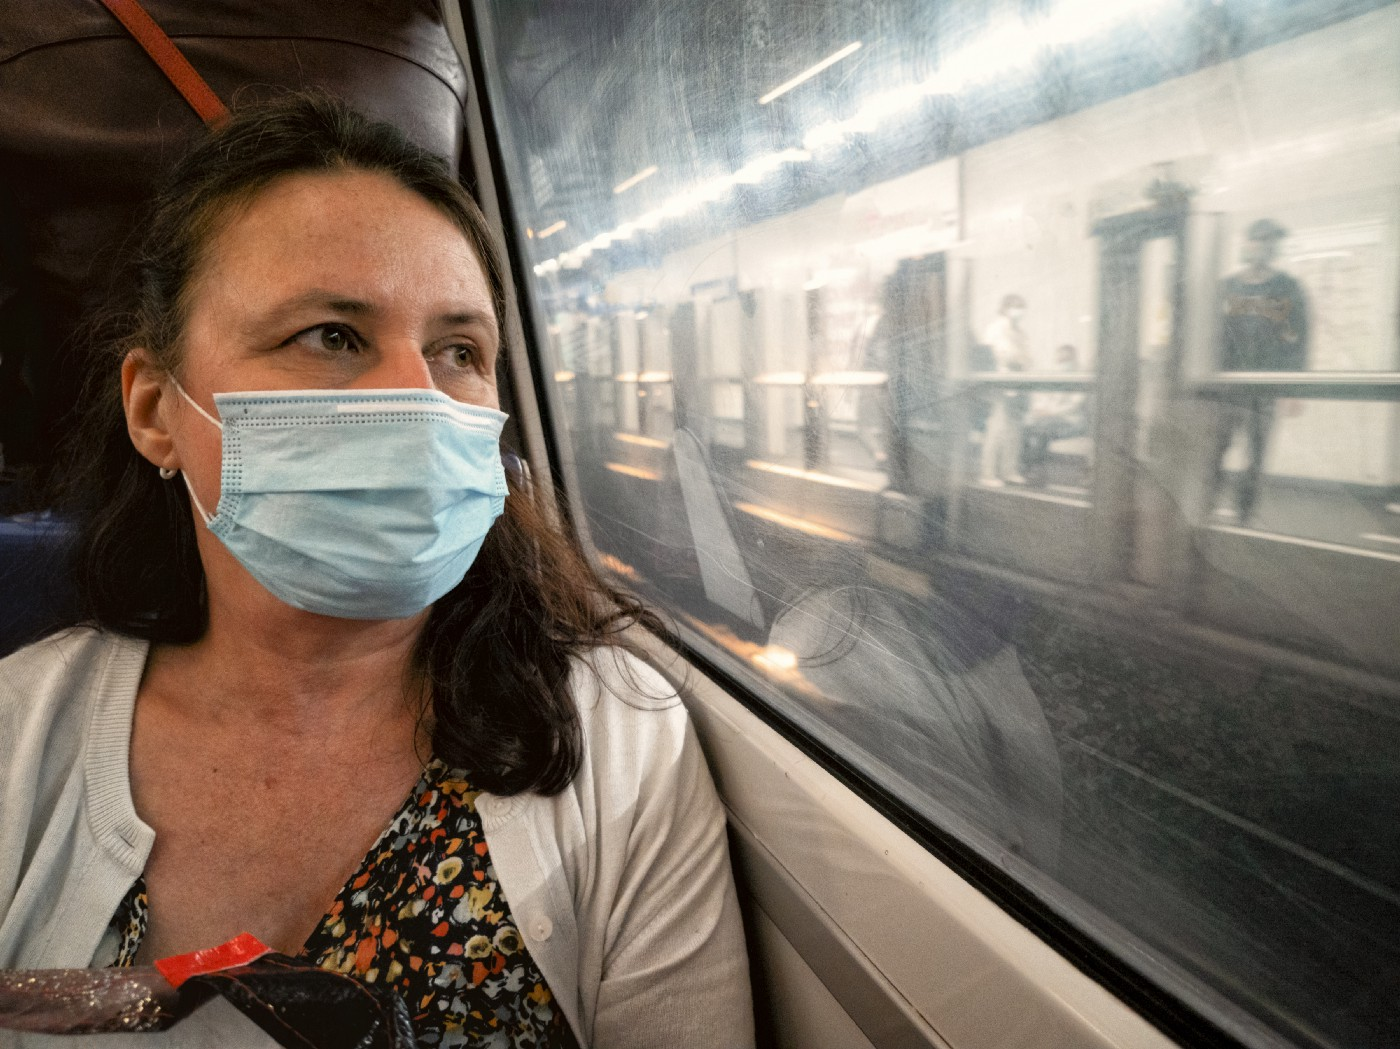 Woman riding train while wearing a face mask.